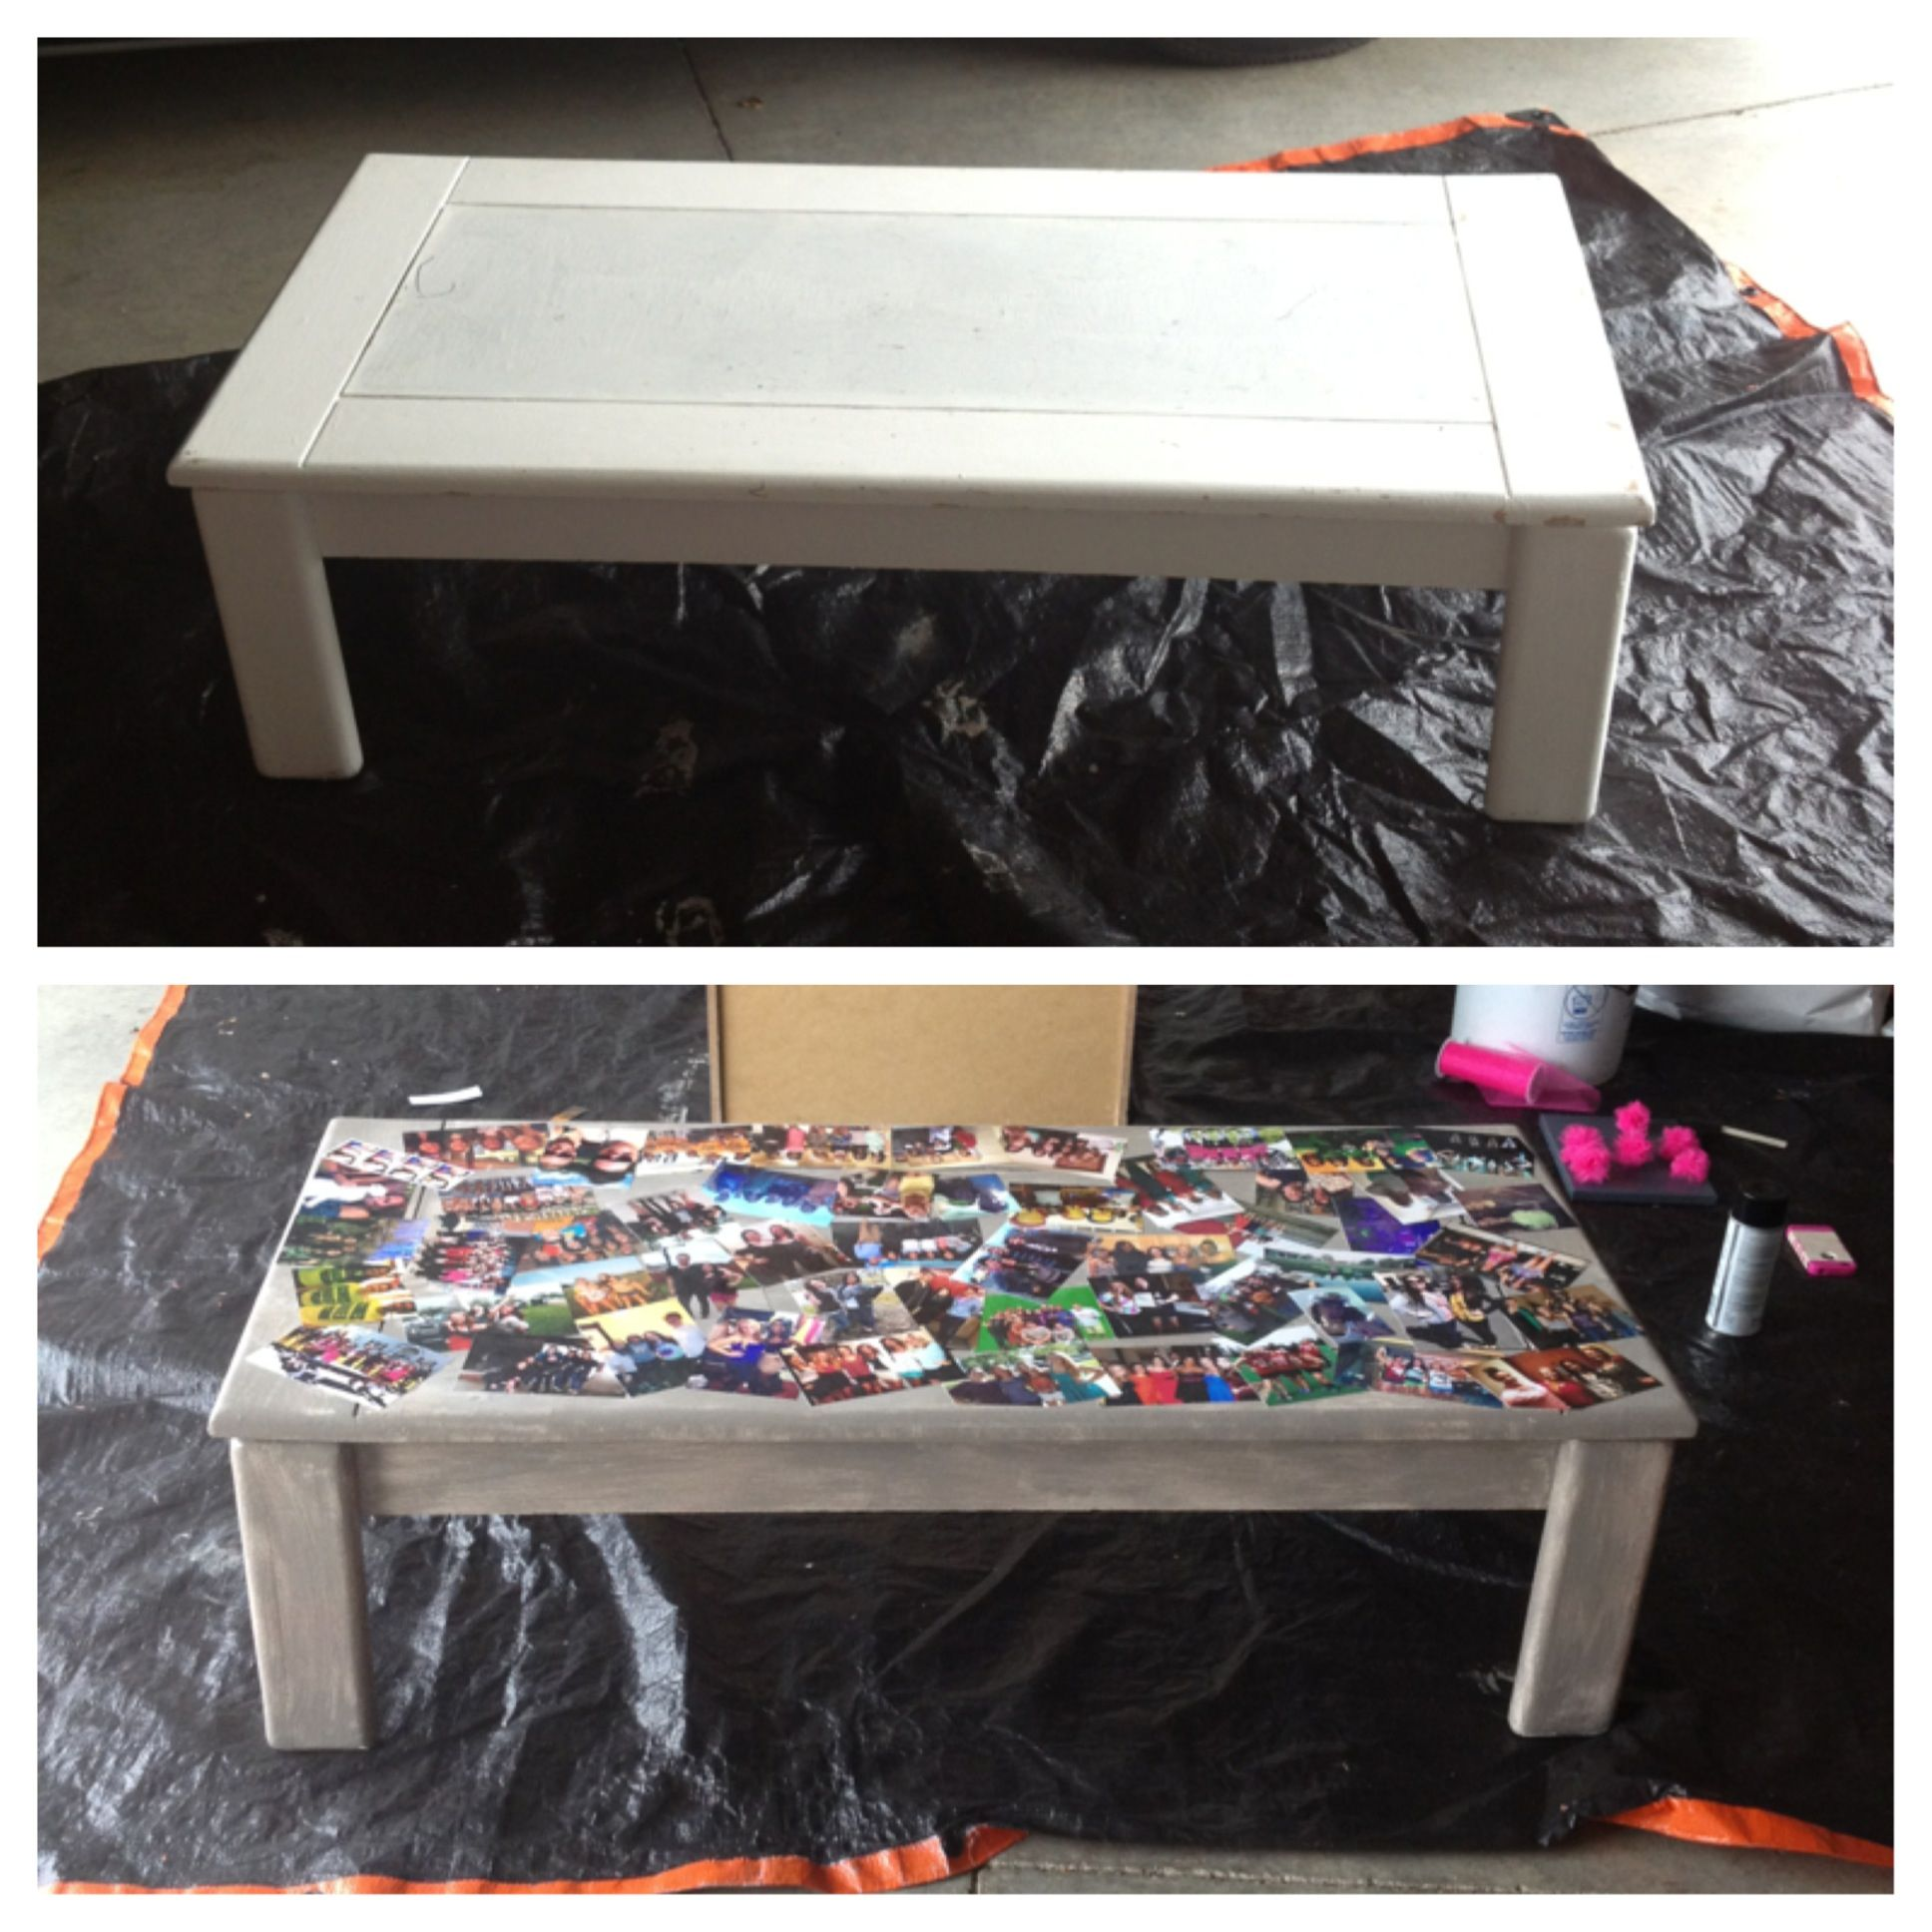 Coffee table picture collage Printed out friend photos then put